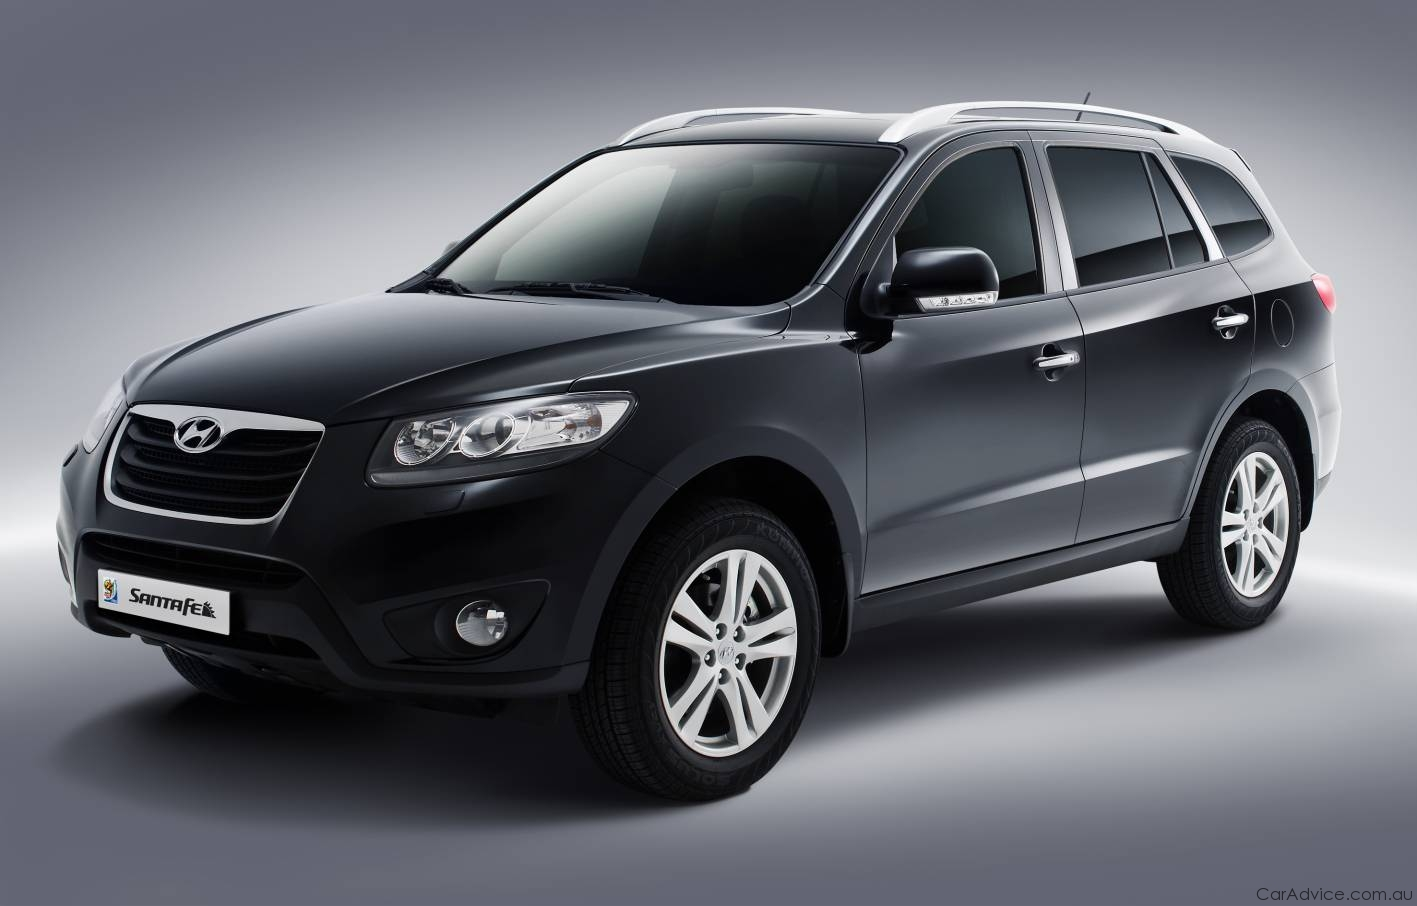 2012 Hyundai Santa Fe Ii Pictures Information And Specs